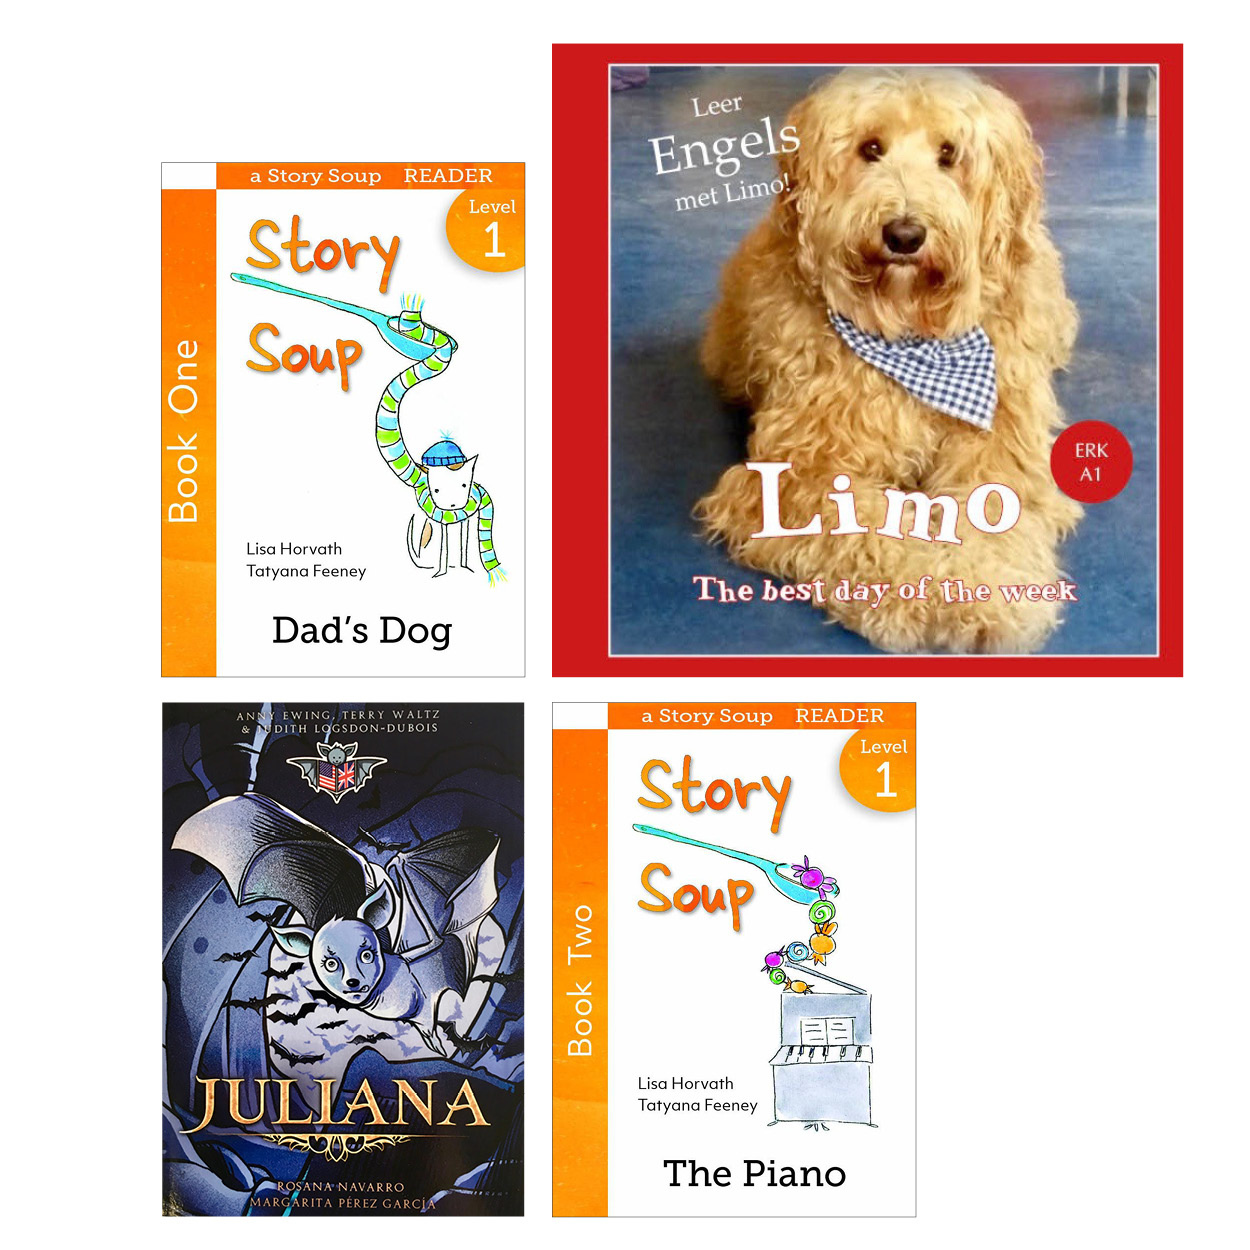 Themaset 4x Engels for kids: Limo, Juliana, 2x Story Soup